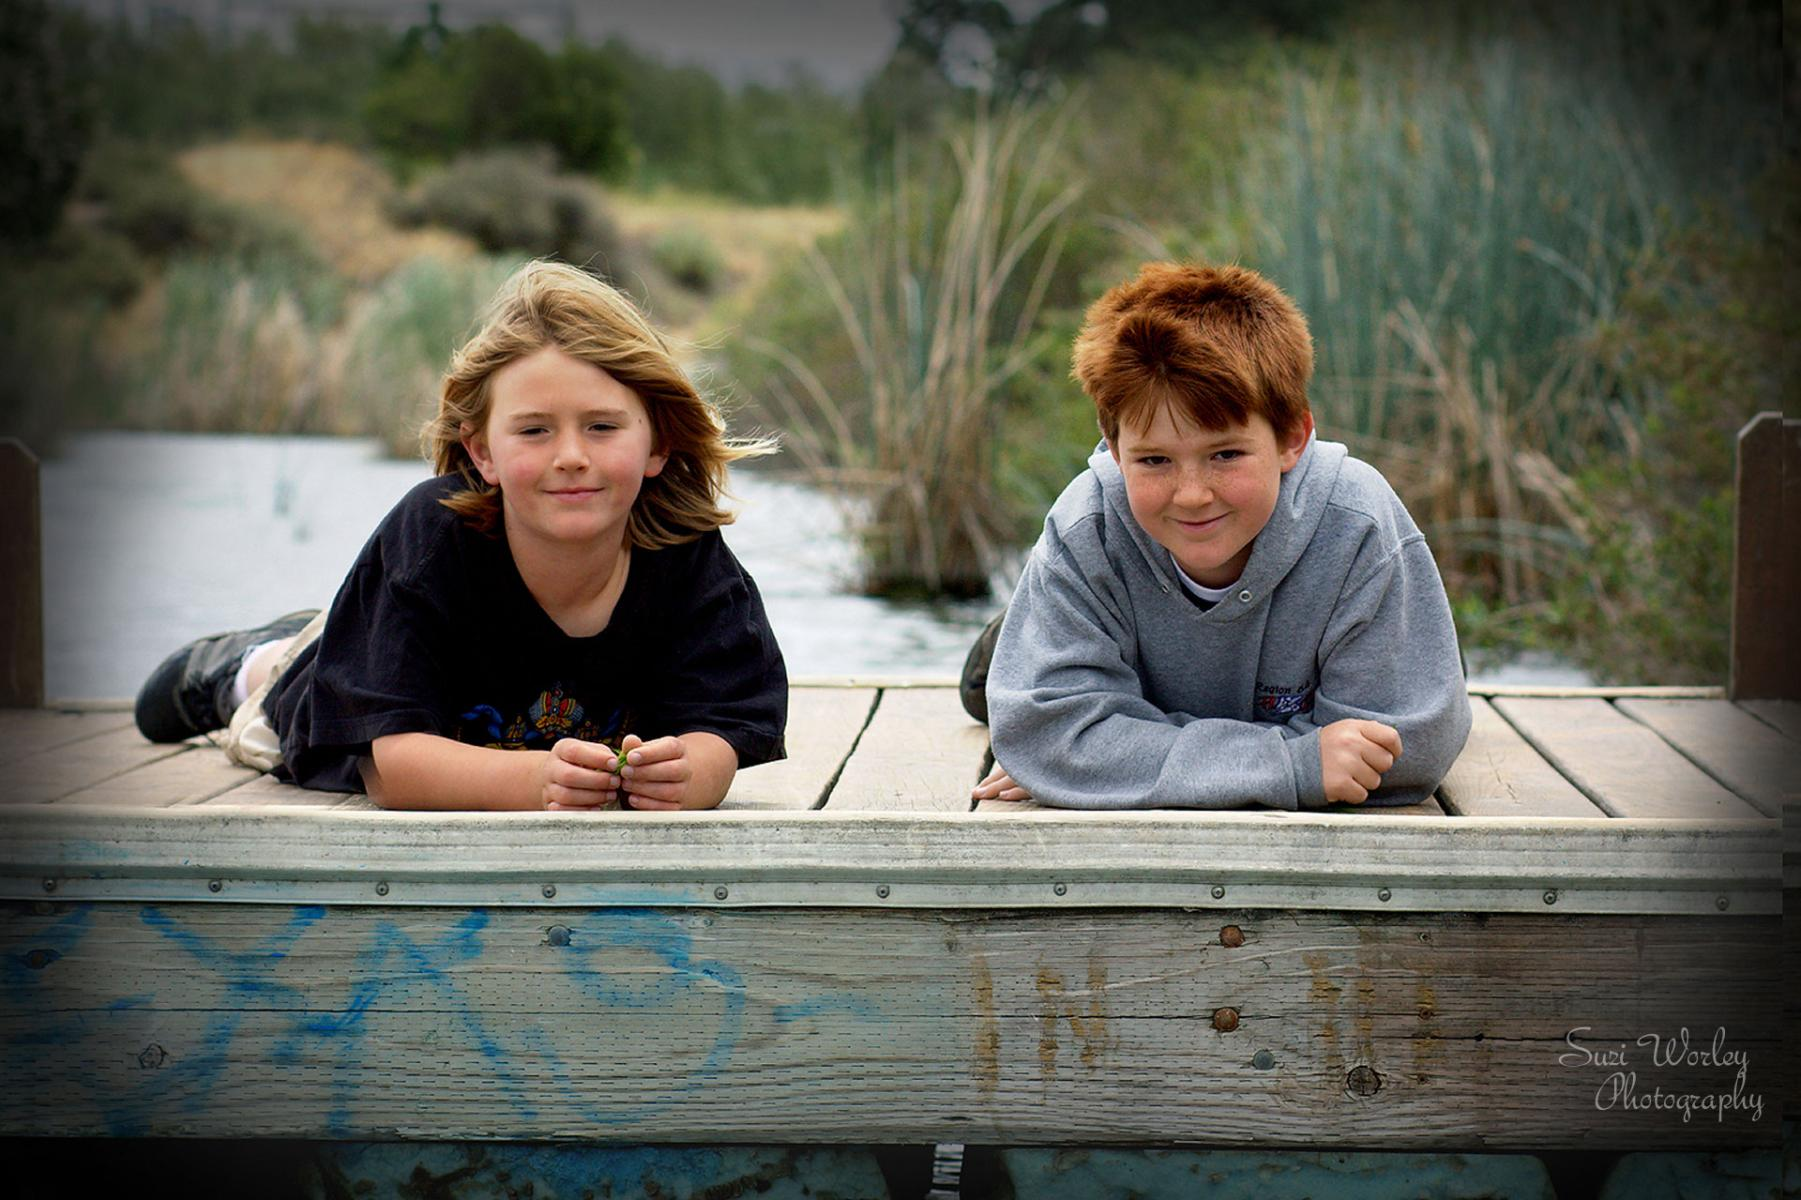 Dockside with the boys.  #coyotecreek #boys #Graffiti #summersession #SuziWorleyPhotography